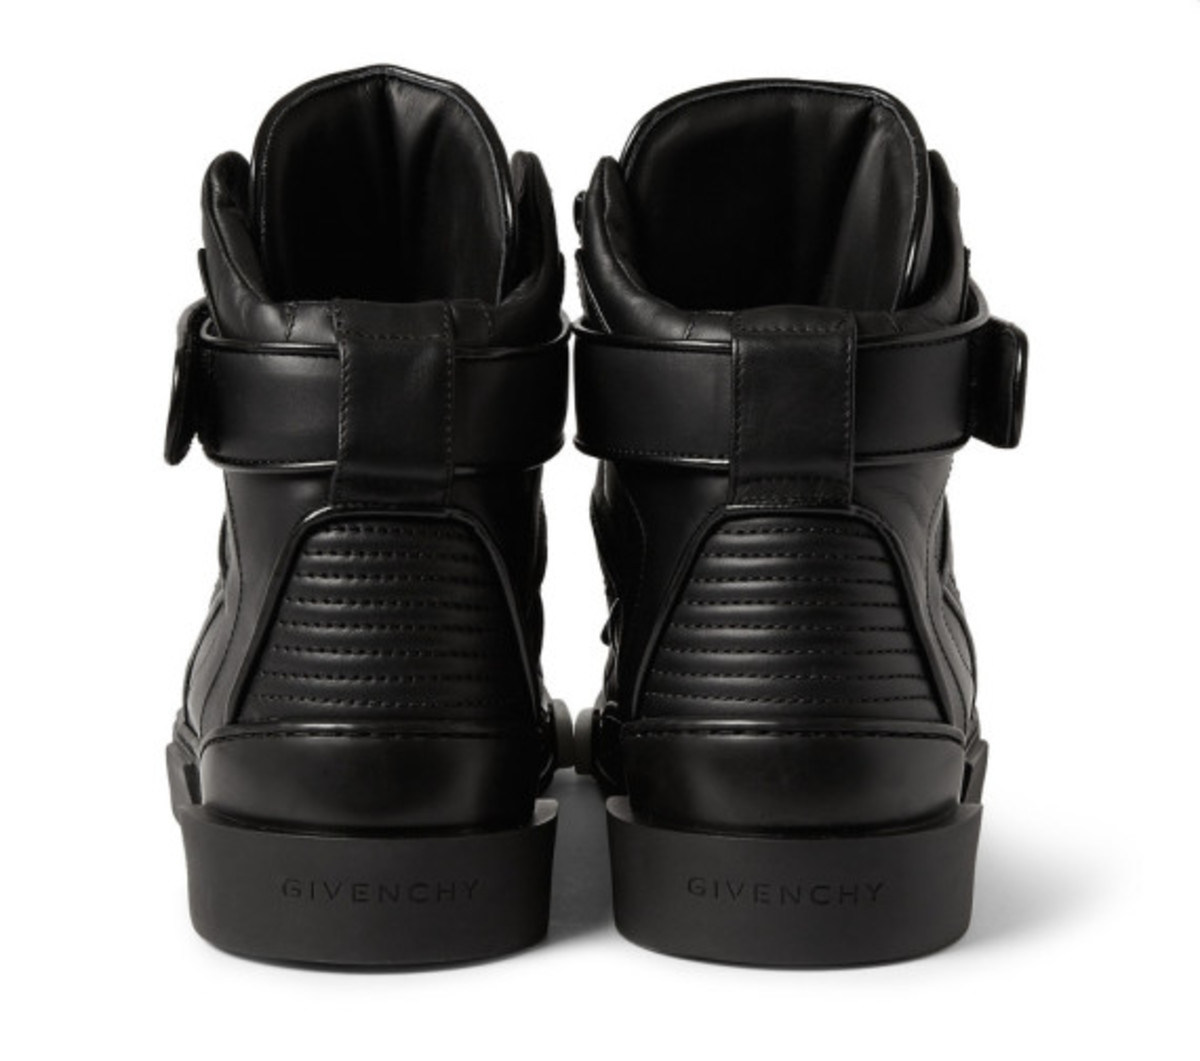 givenchy-tyson-high-top-leather-sneakers-02